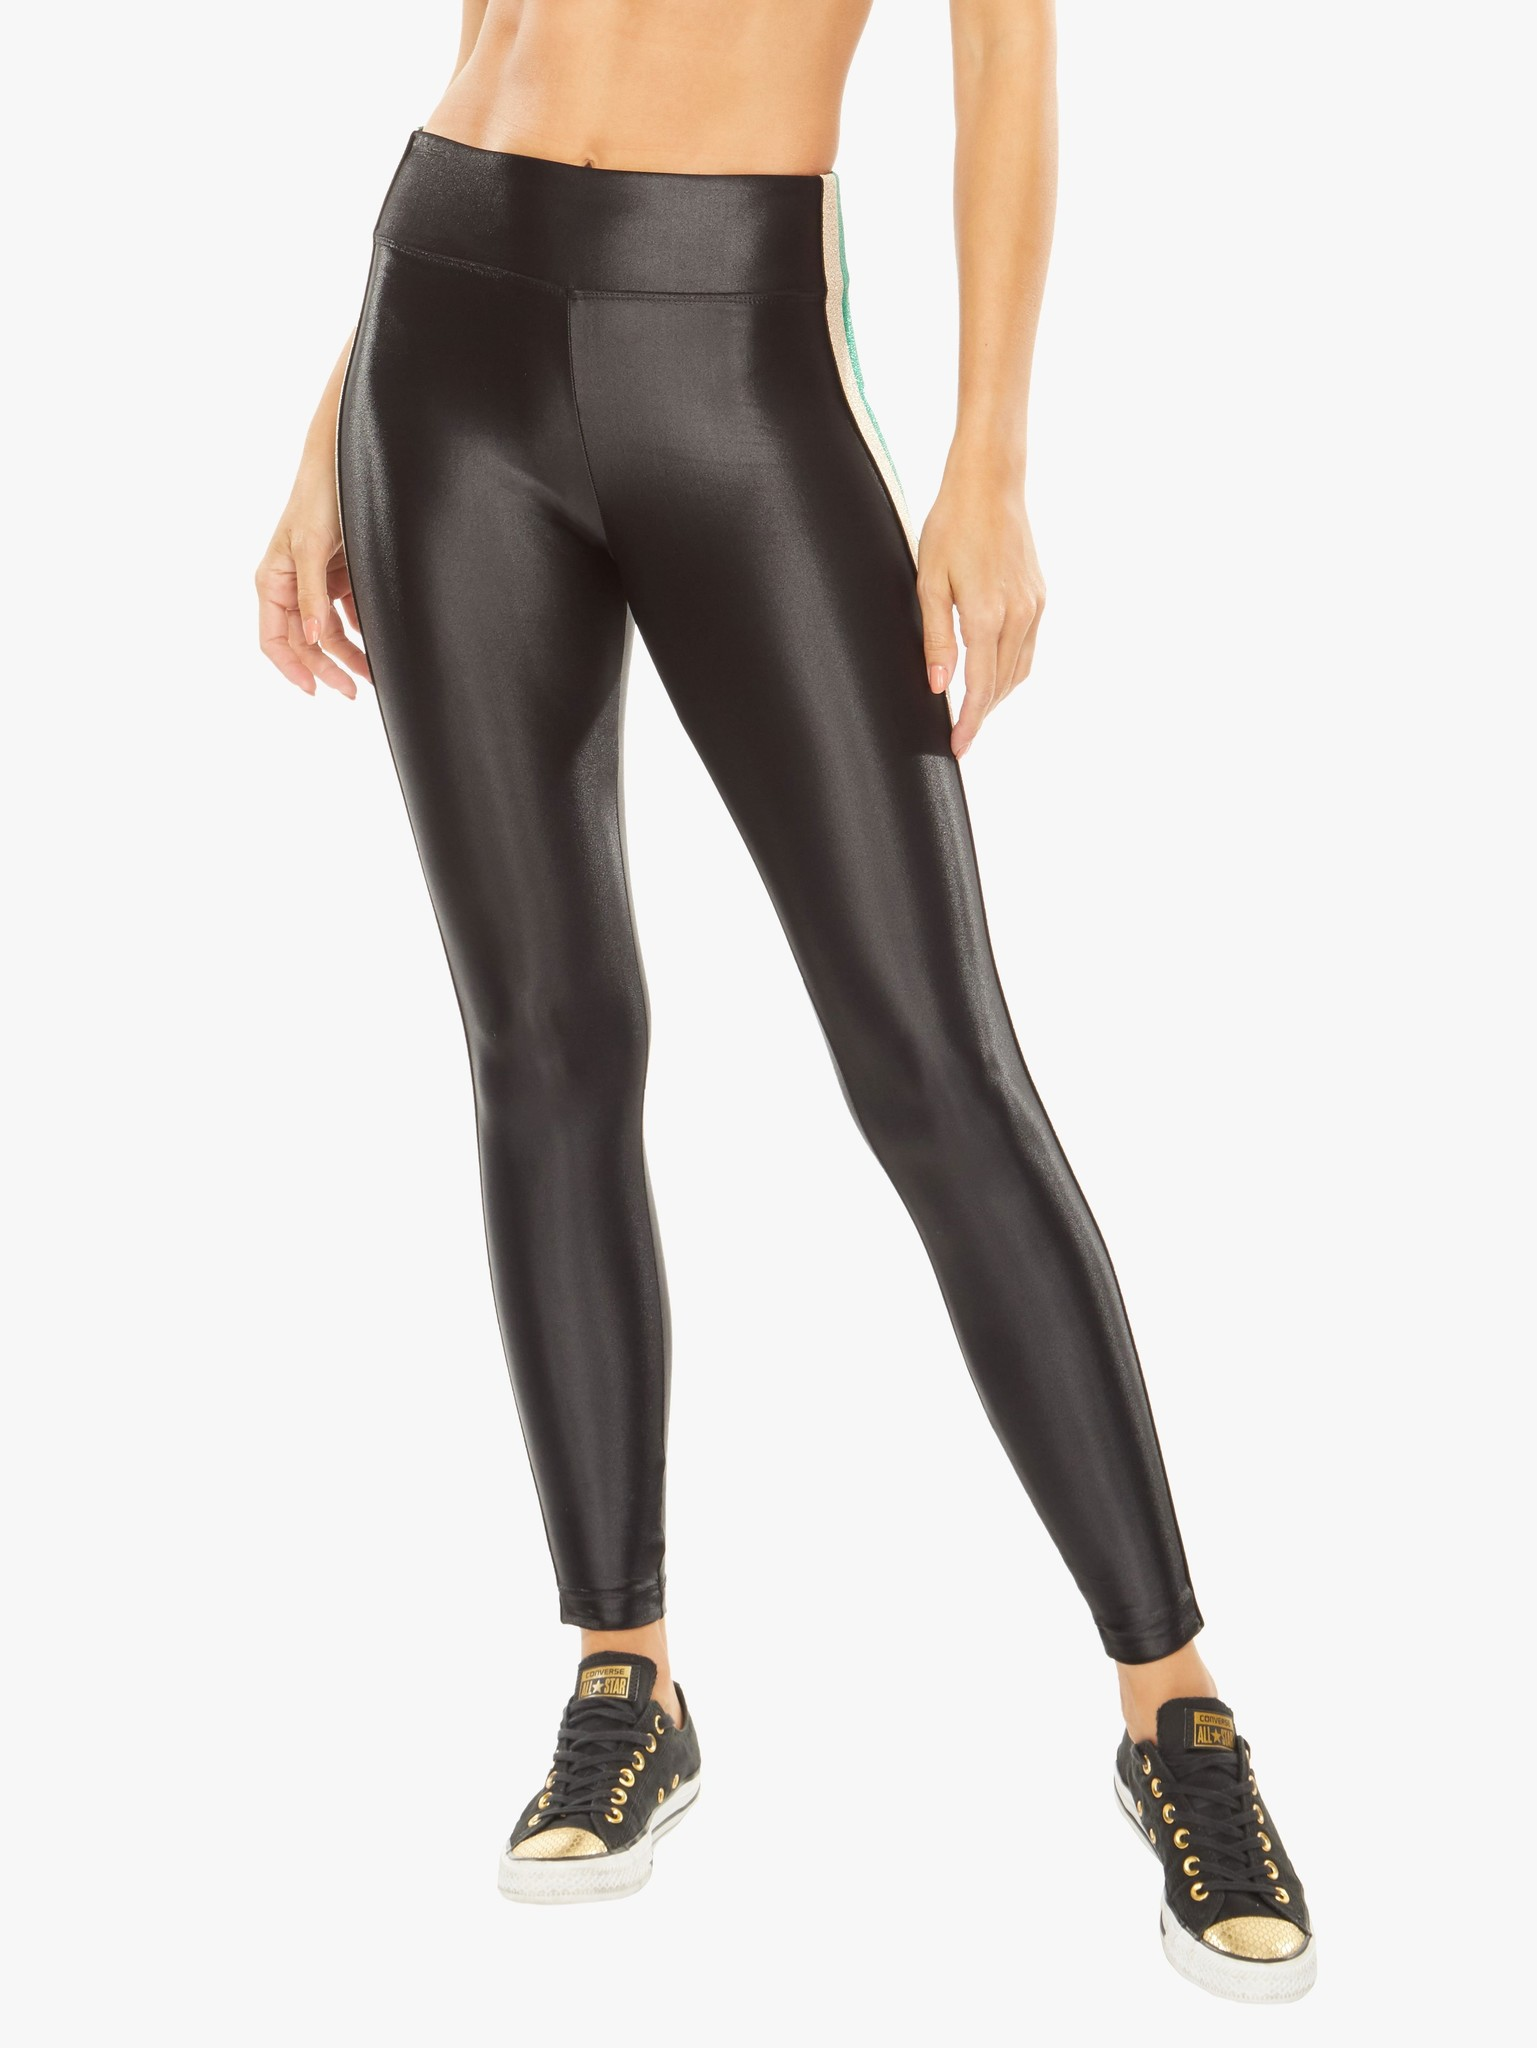 Koral Activewear Trainer High-Rise Energy Legging